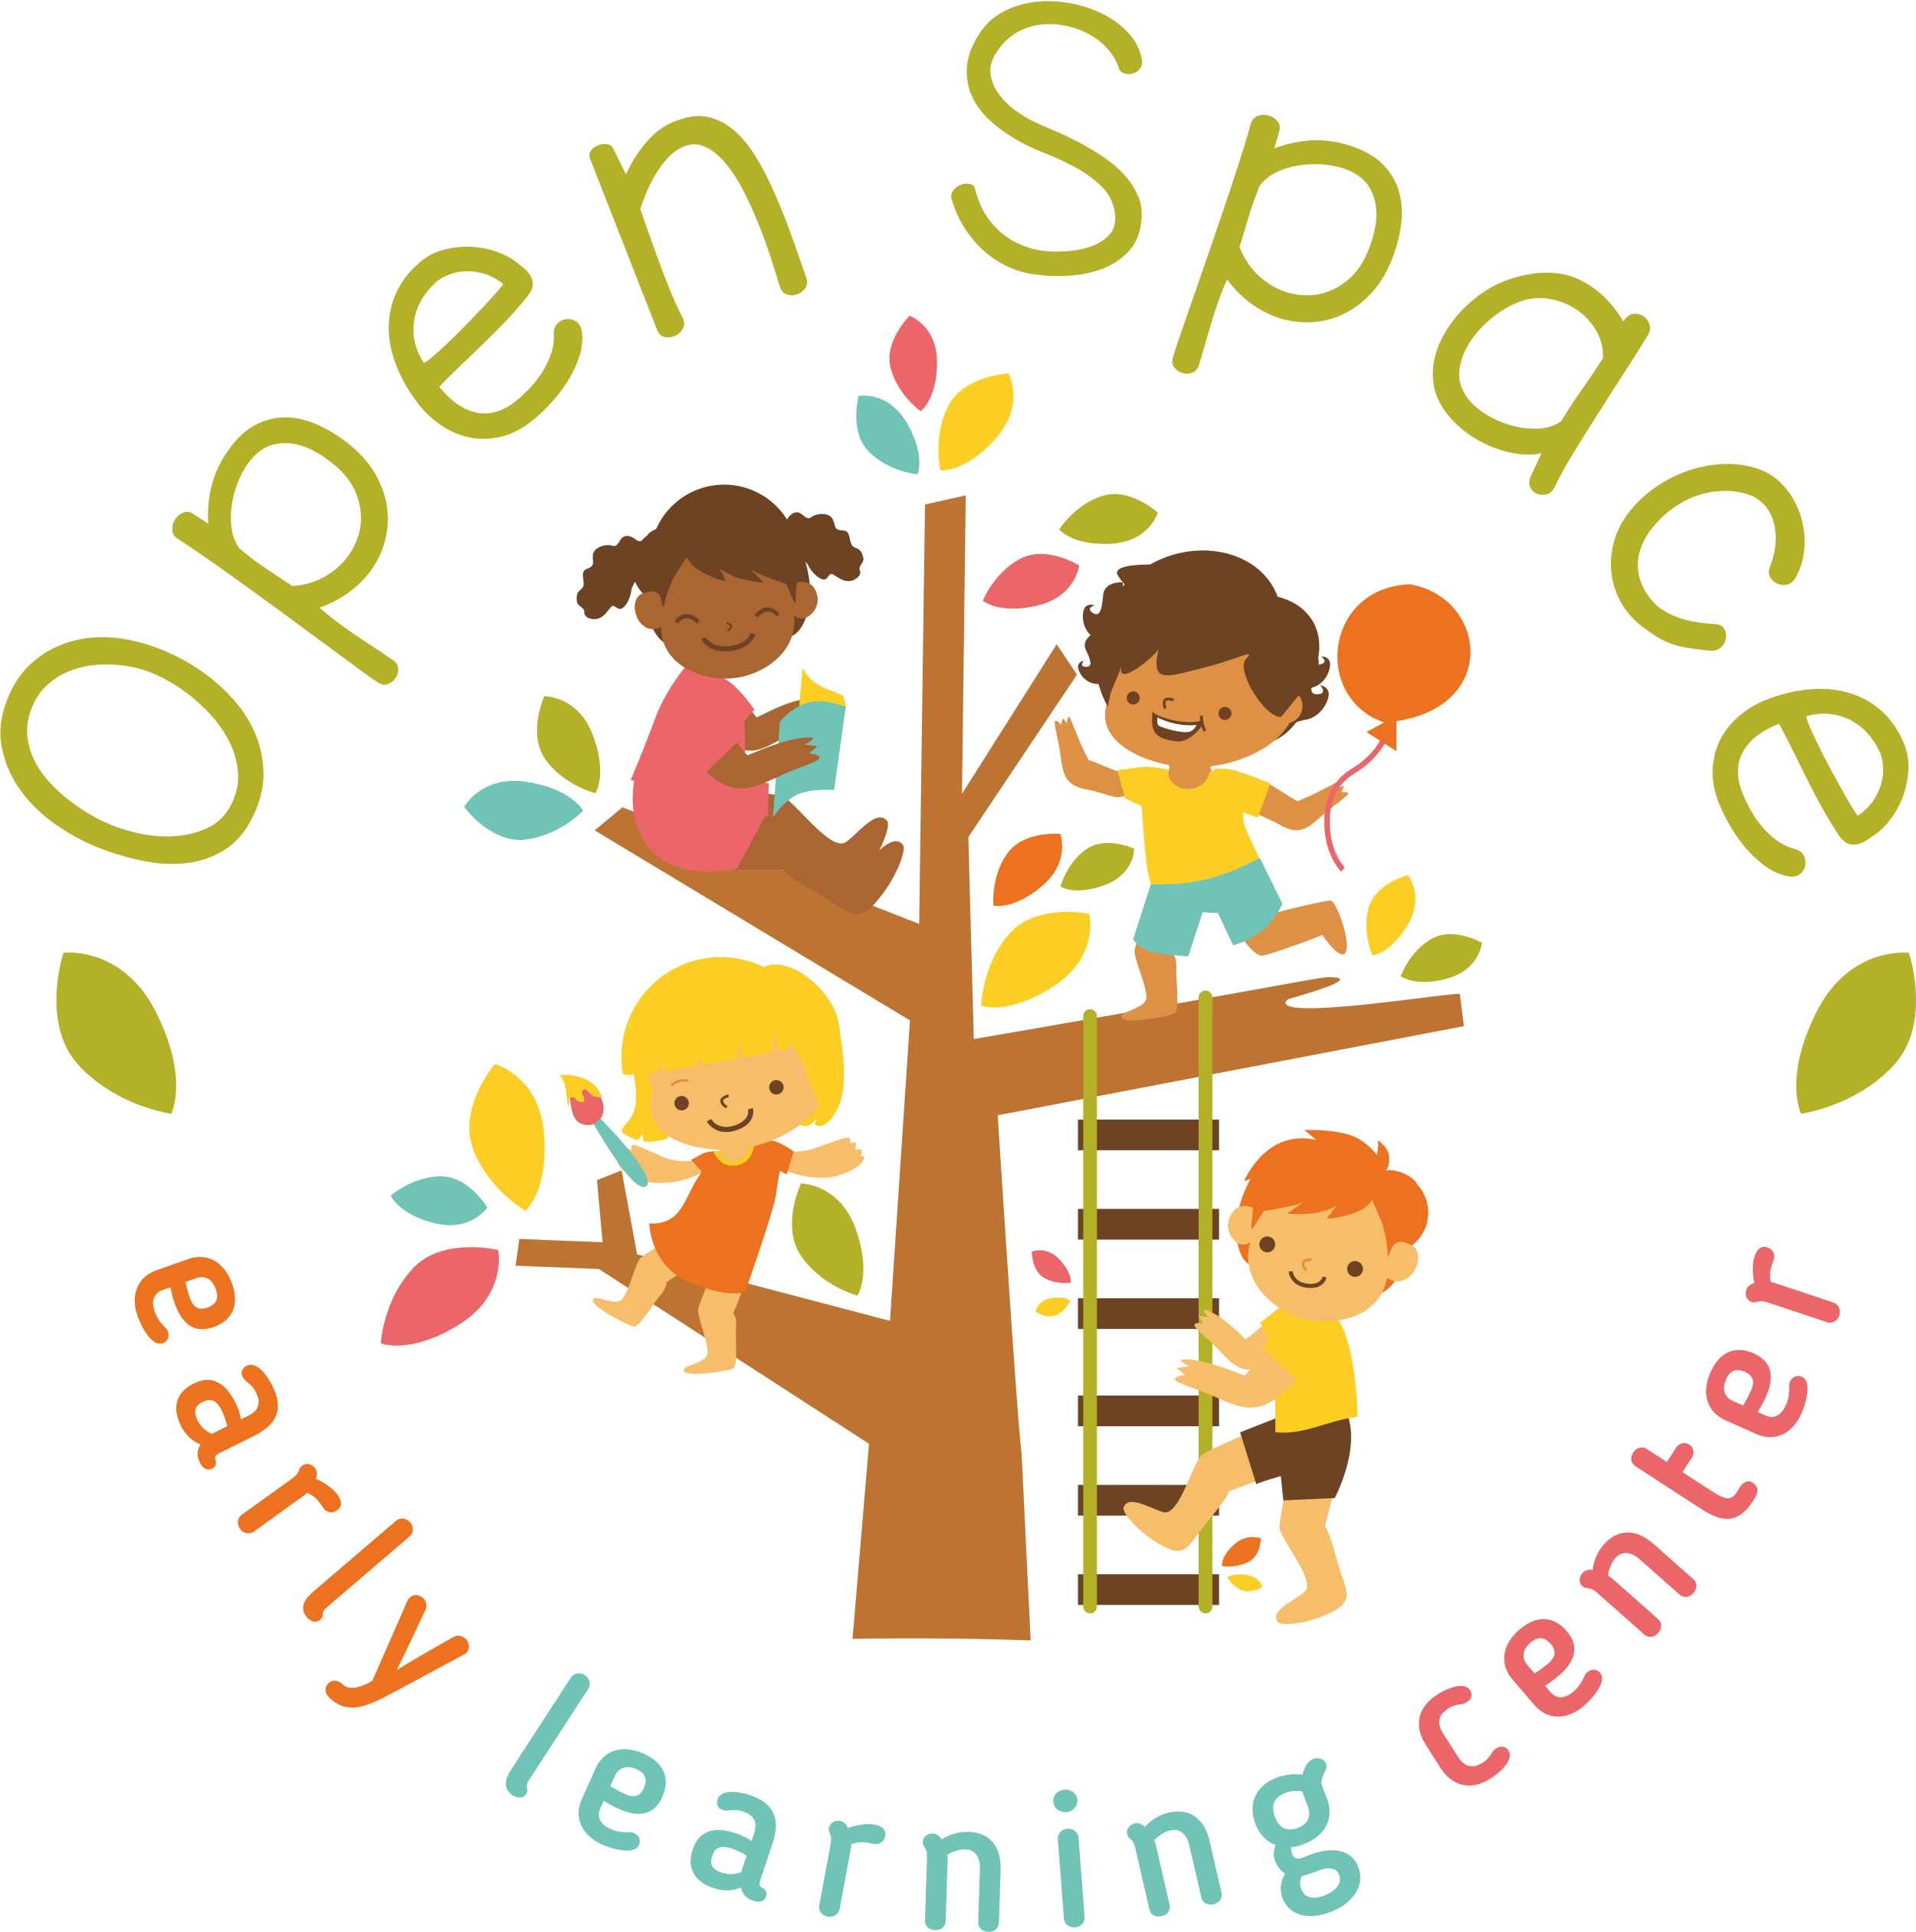 Open space early learning. Curriculum clipart preschool center time